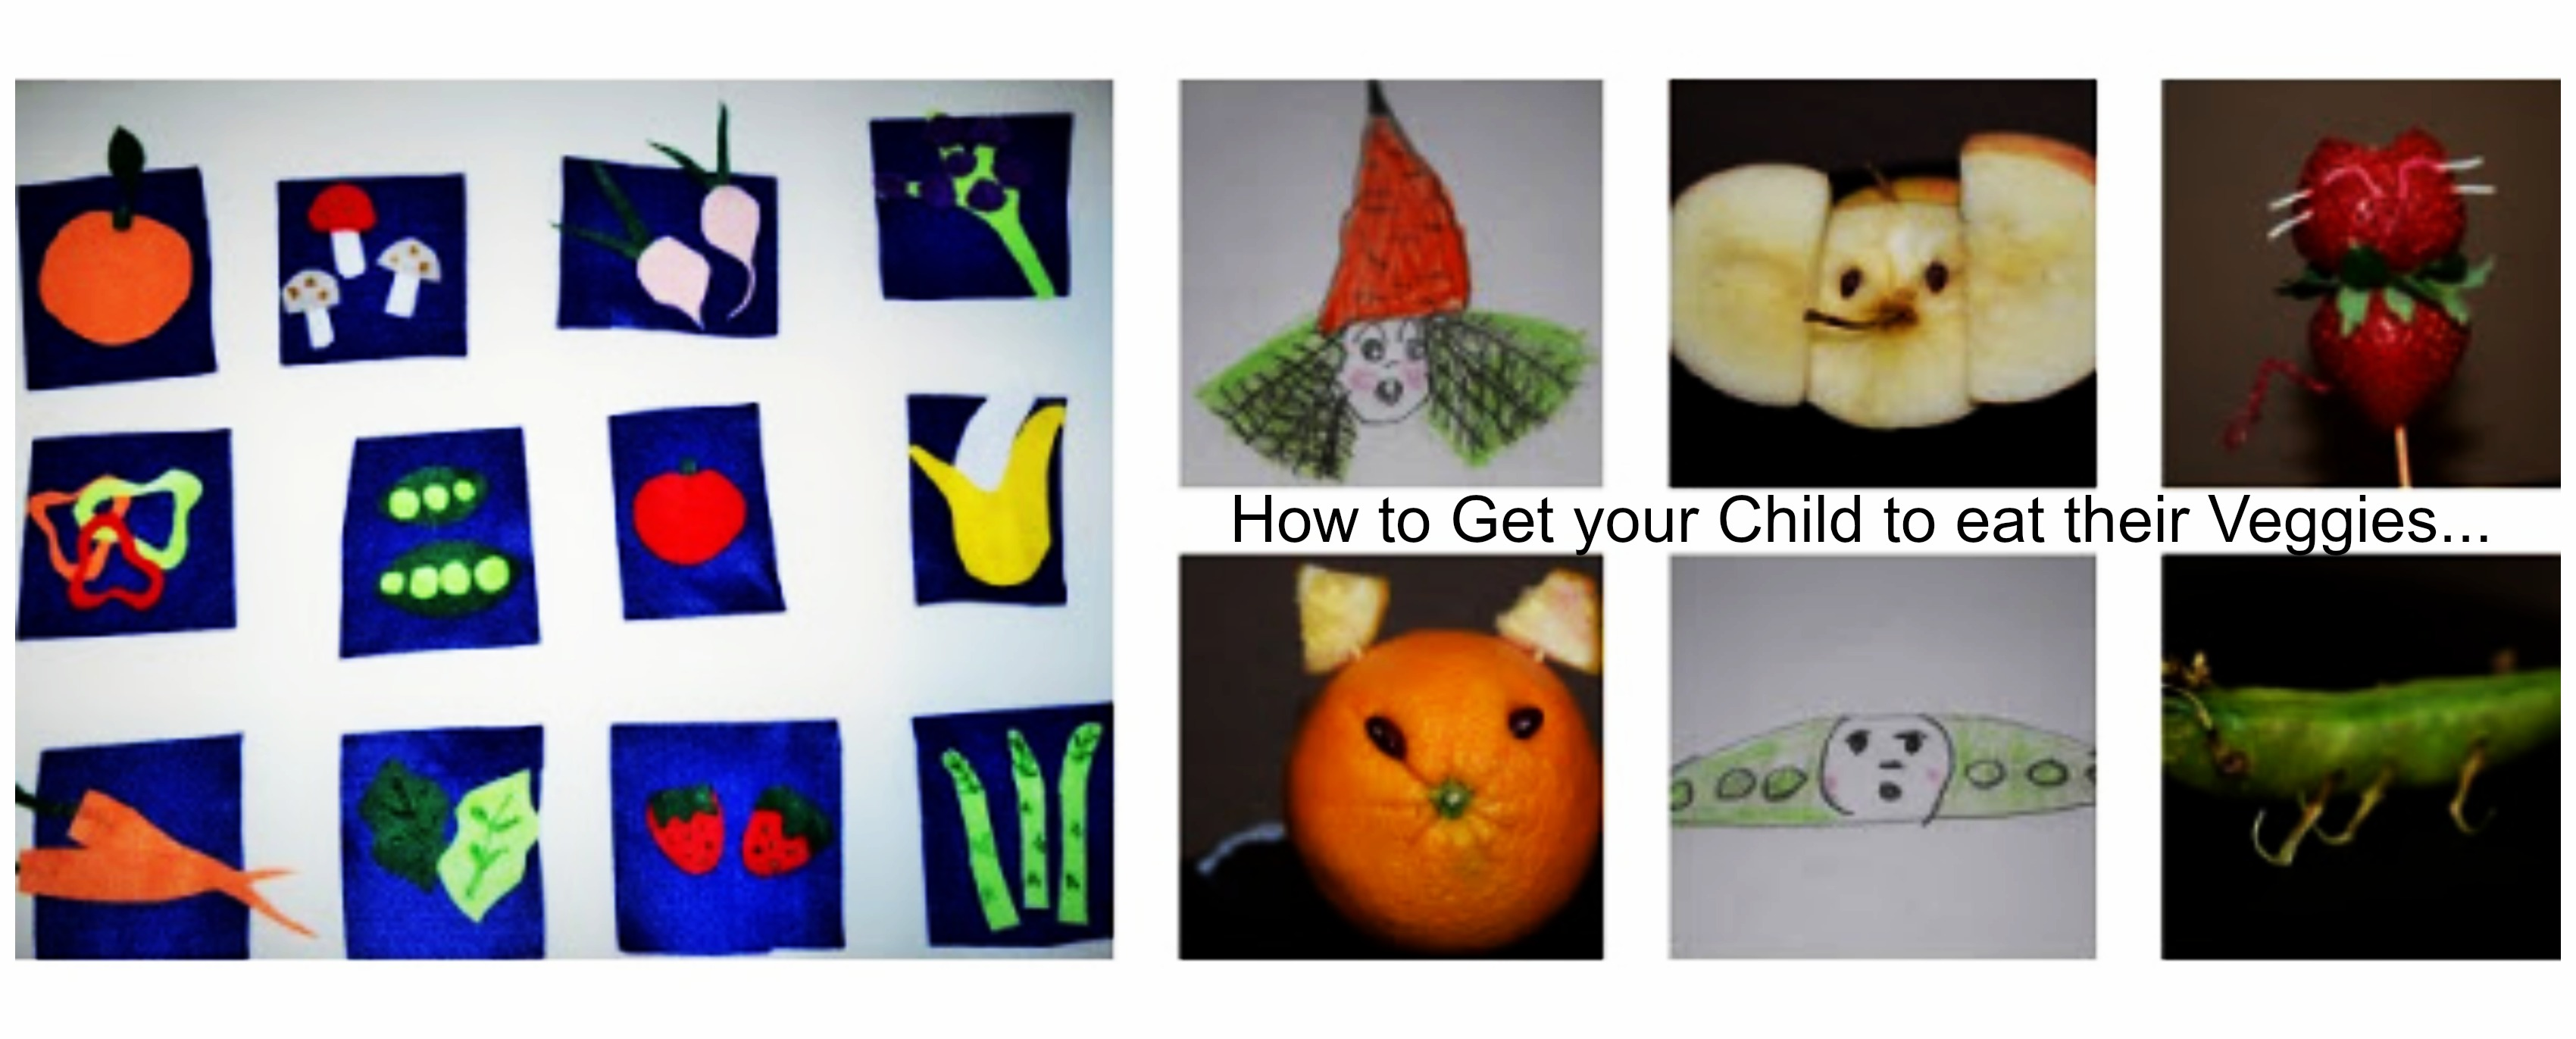 how-to-get-your-child-to-eat-their-veggies